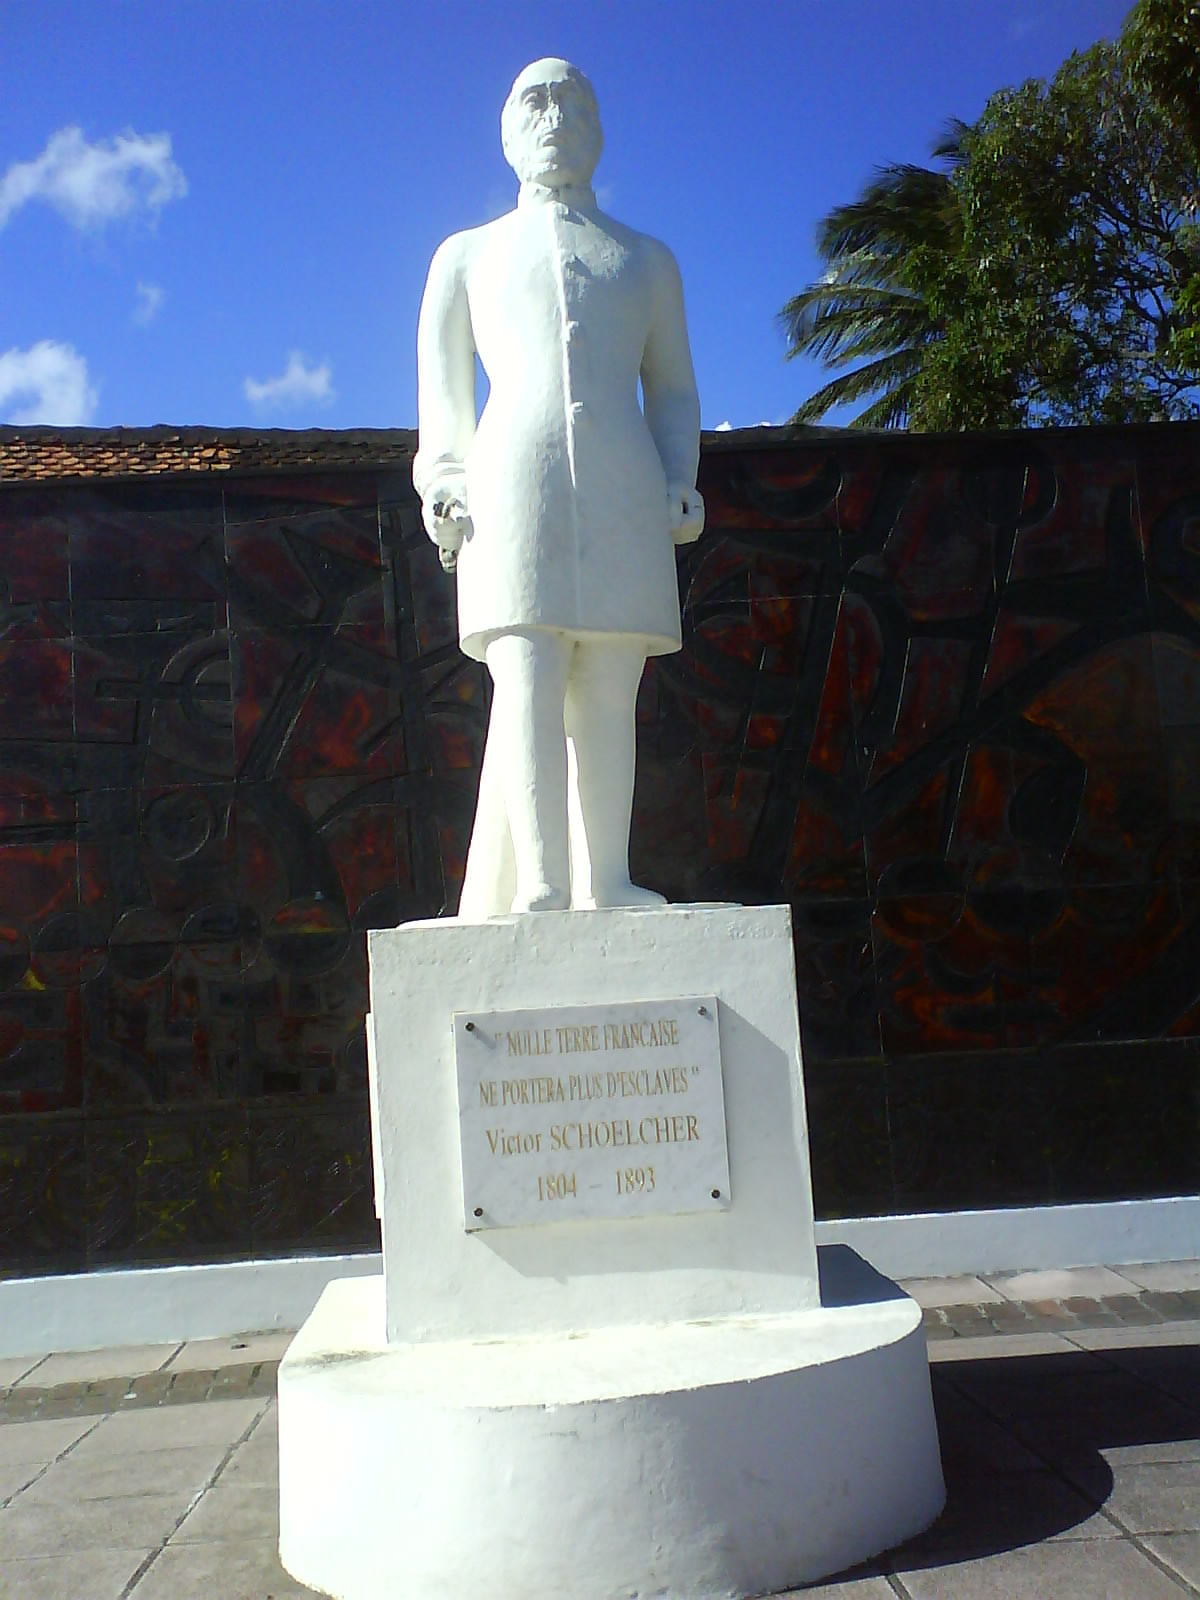 Statue of Victor Schoelcher in white stone, standing up.